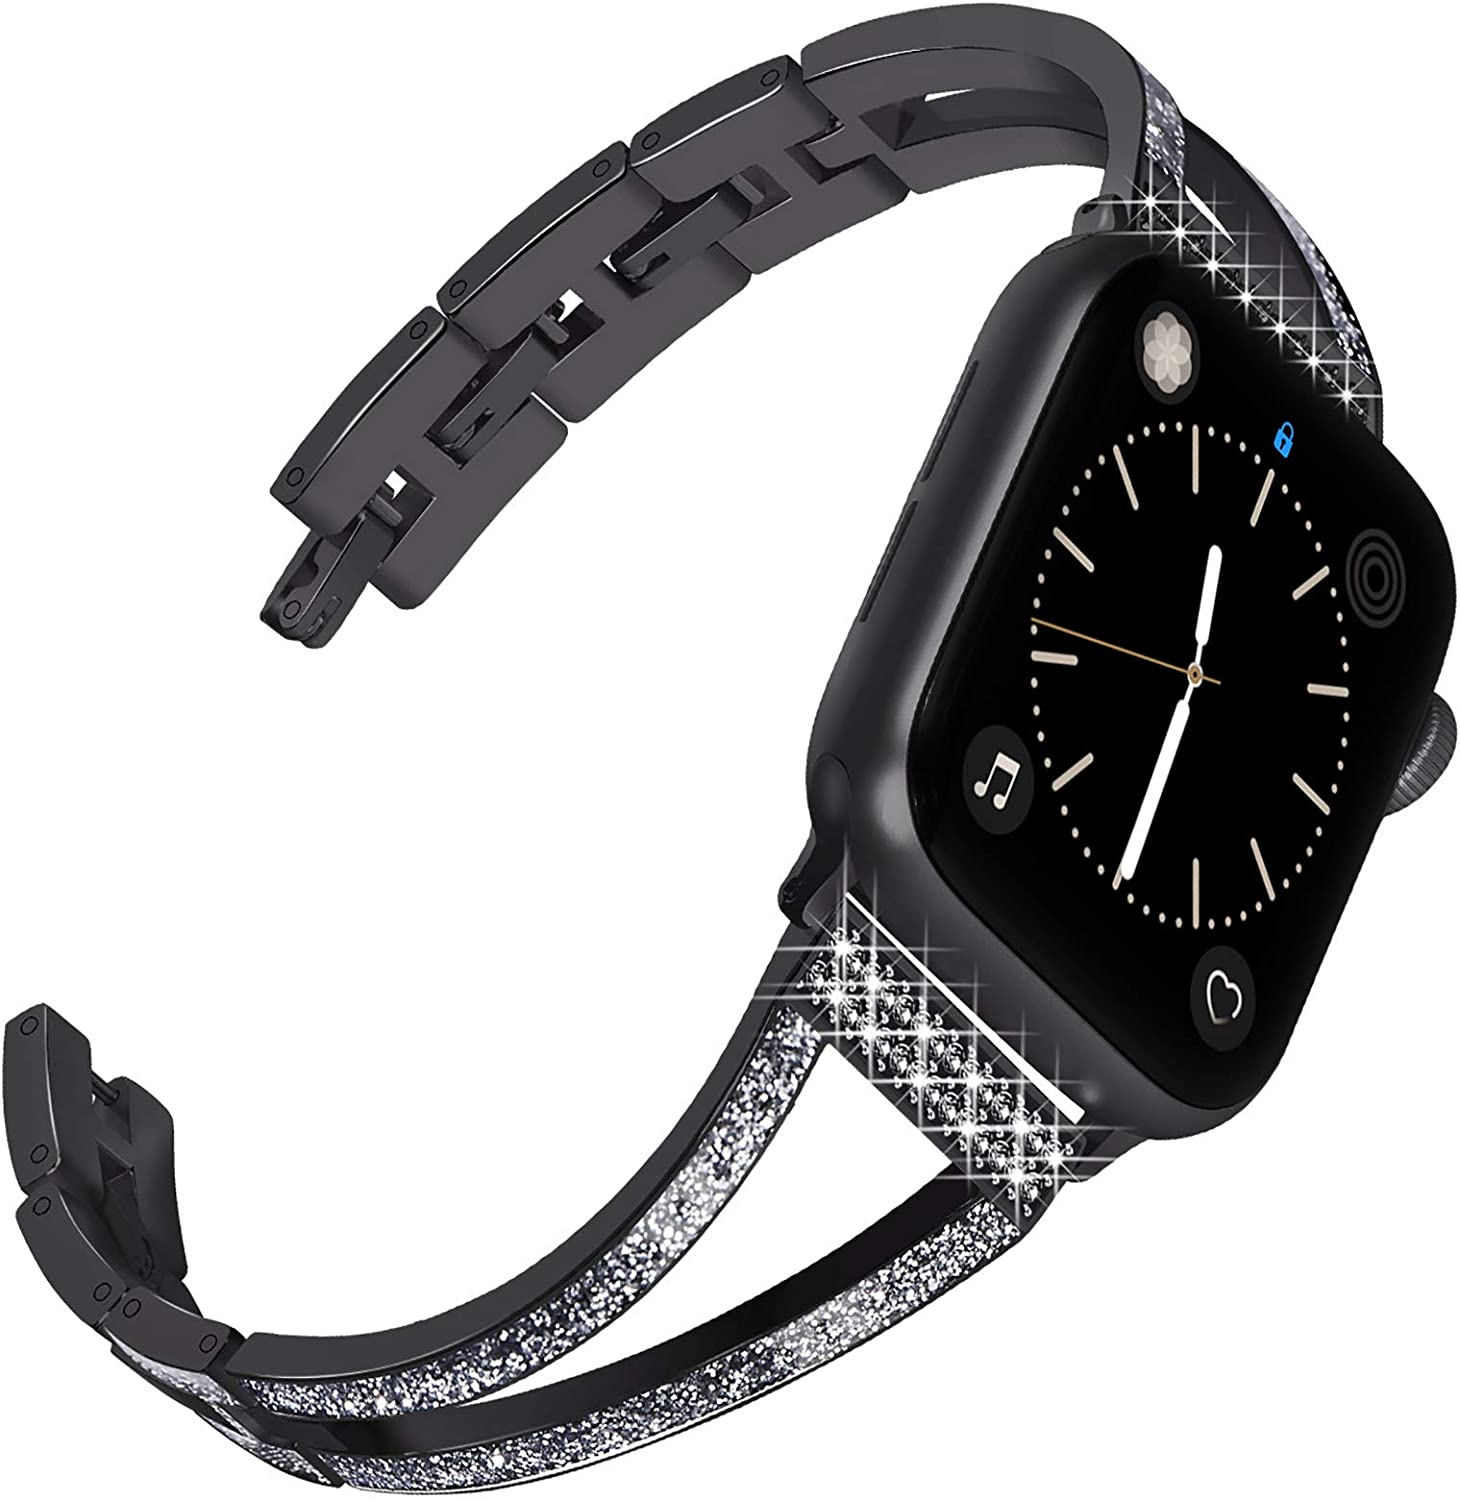 Surace Compatible with Apple Watch Bands 38mm Women Series 3 Cuff Bracelet Replacement for Apple Watch Bands Series 6 Series 5 Series 4 40mm Compatible with Apple Watch SE Band, Black